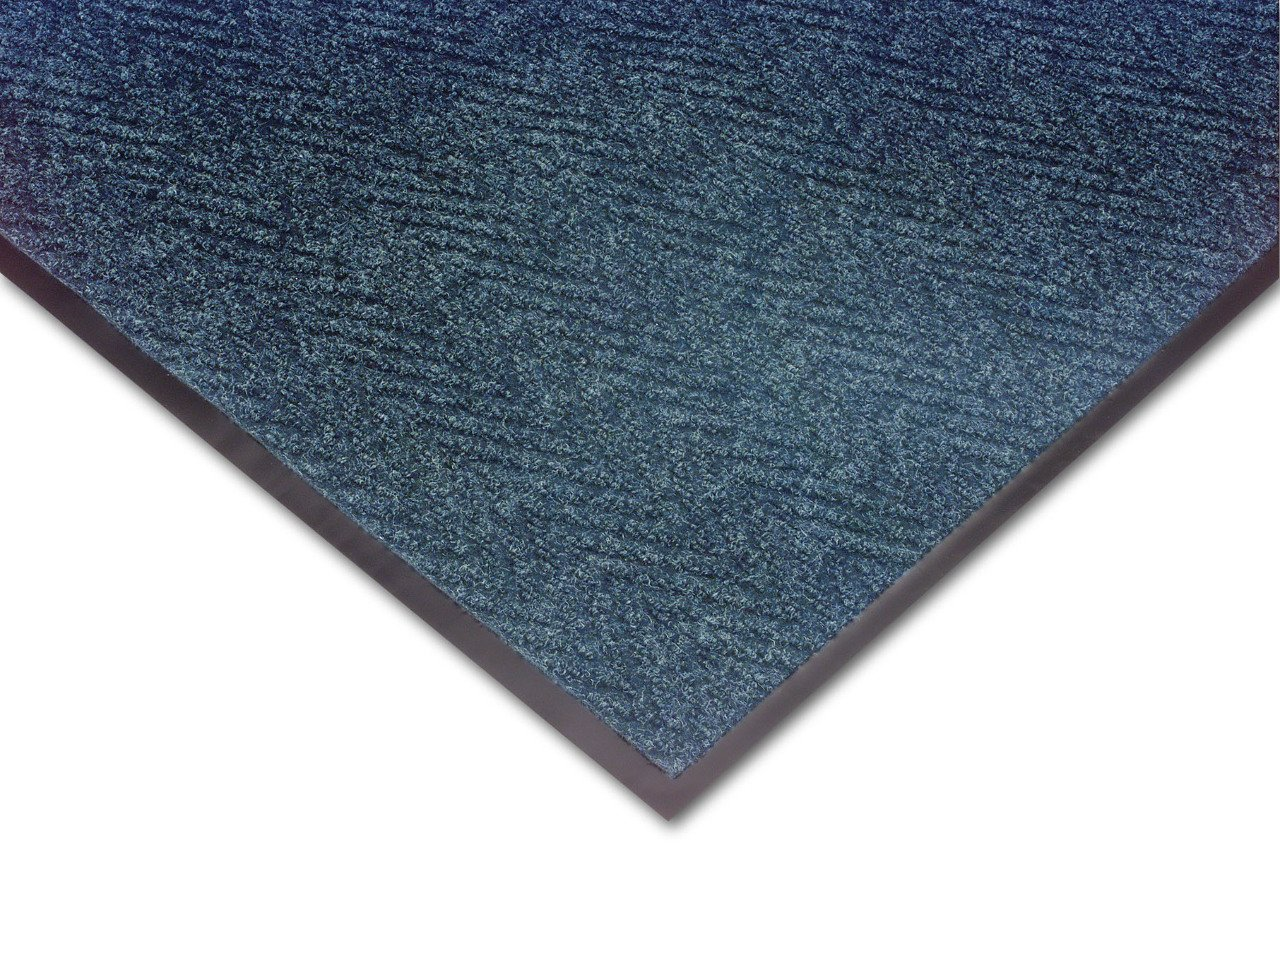 NoTrax 105 Chevron Entrance Mat, for Lobbies and Indoor Entranceways, 3' Width x 10' Length x 5/16'' Thickness, Slate Blue